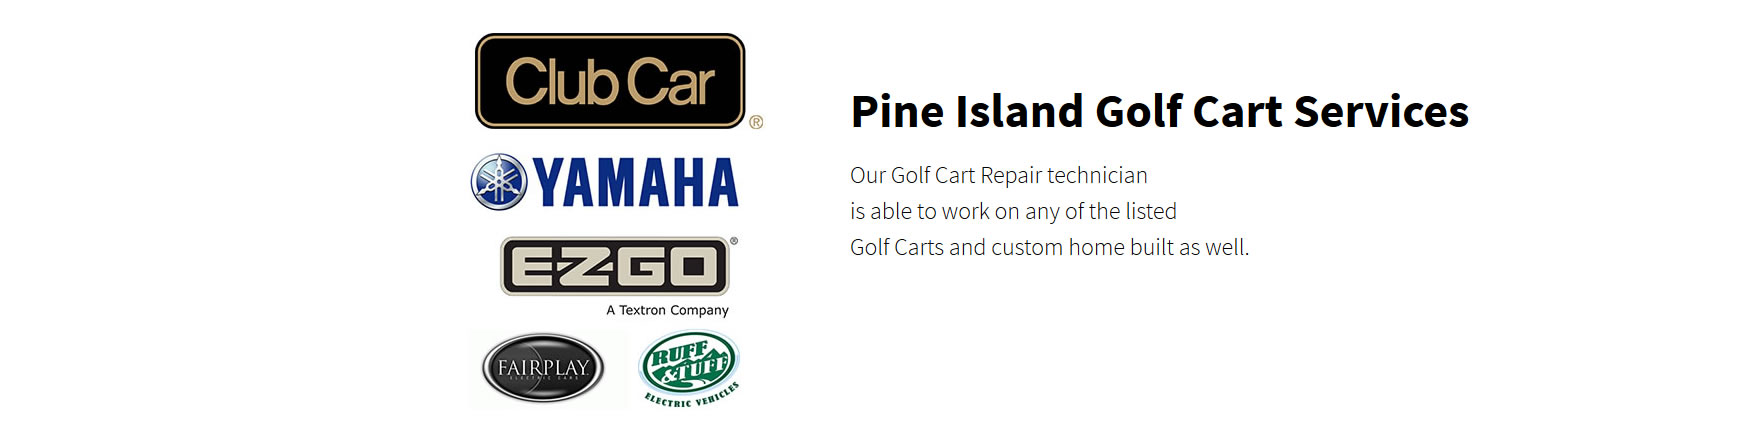 Pine Island Golf Carts sales rentals and repairs